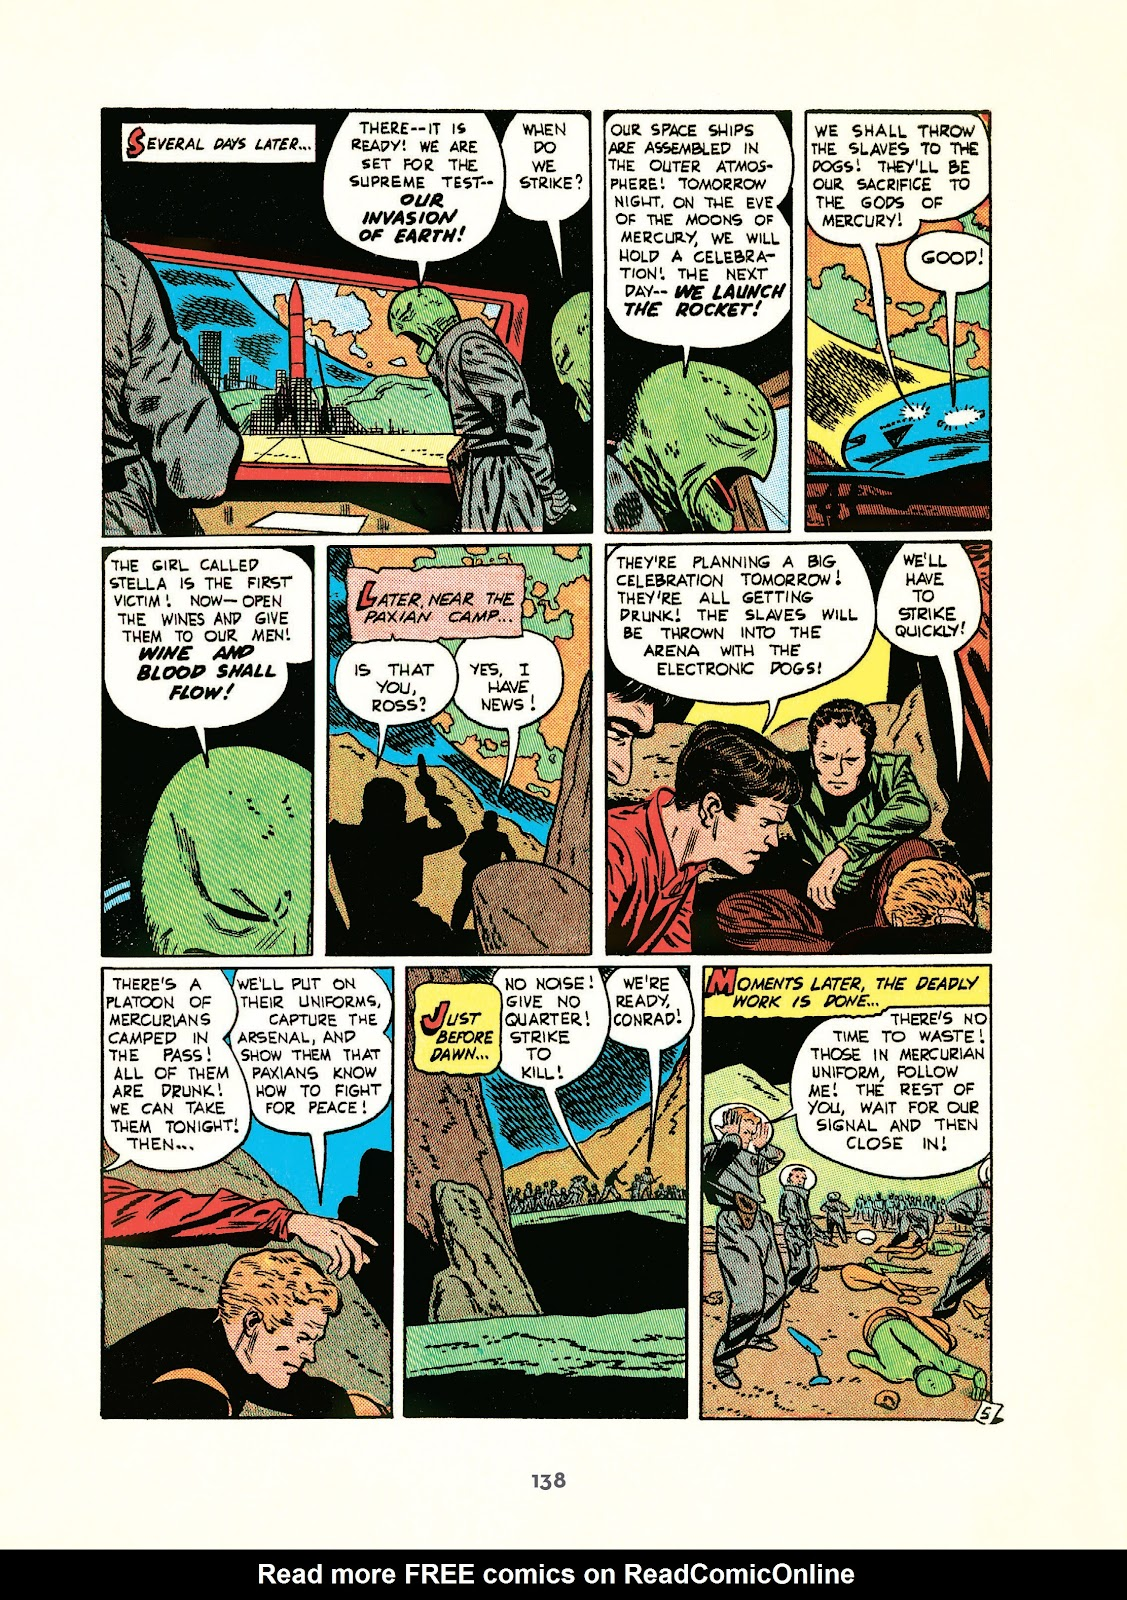 Read online Setting the Standard: Comics by Alex Toth 1952-1954 comic -  Issue # TPB (Part 2) - 39